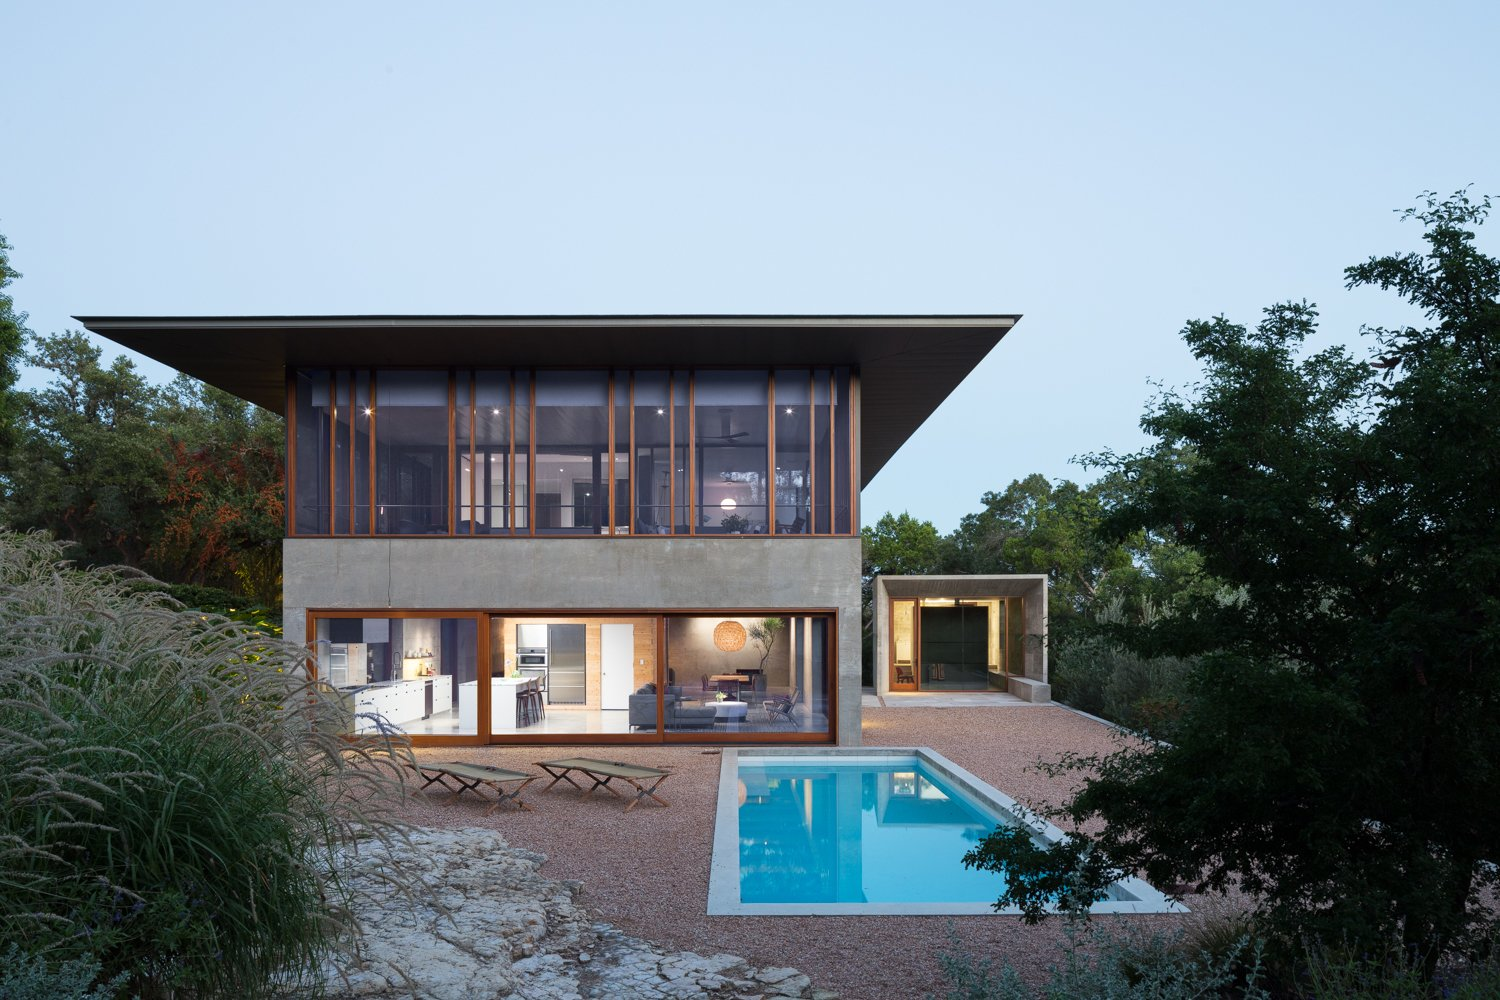 A Dramatic Roof and Board-Formed Concrete Keep This Texas Residence Cool